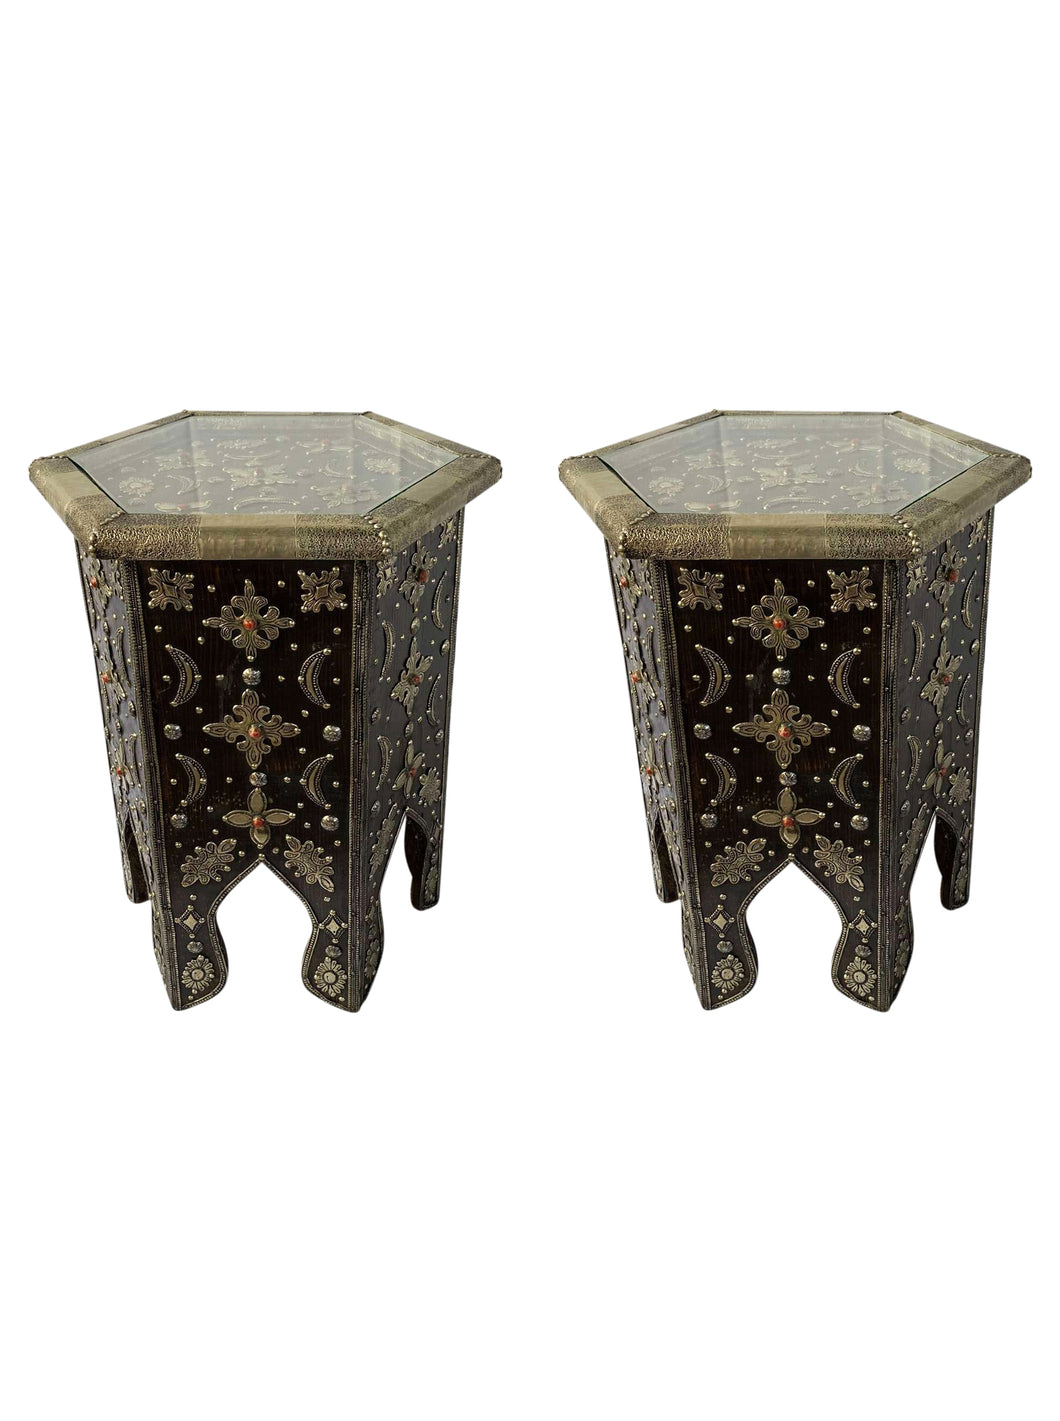 Moroccan Wood Embellished Side Tables (Pair)